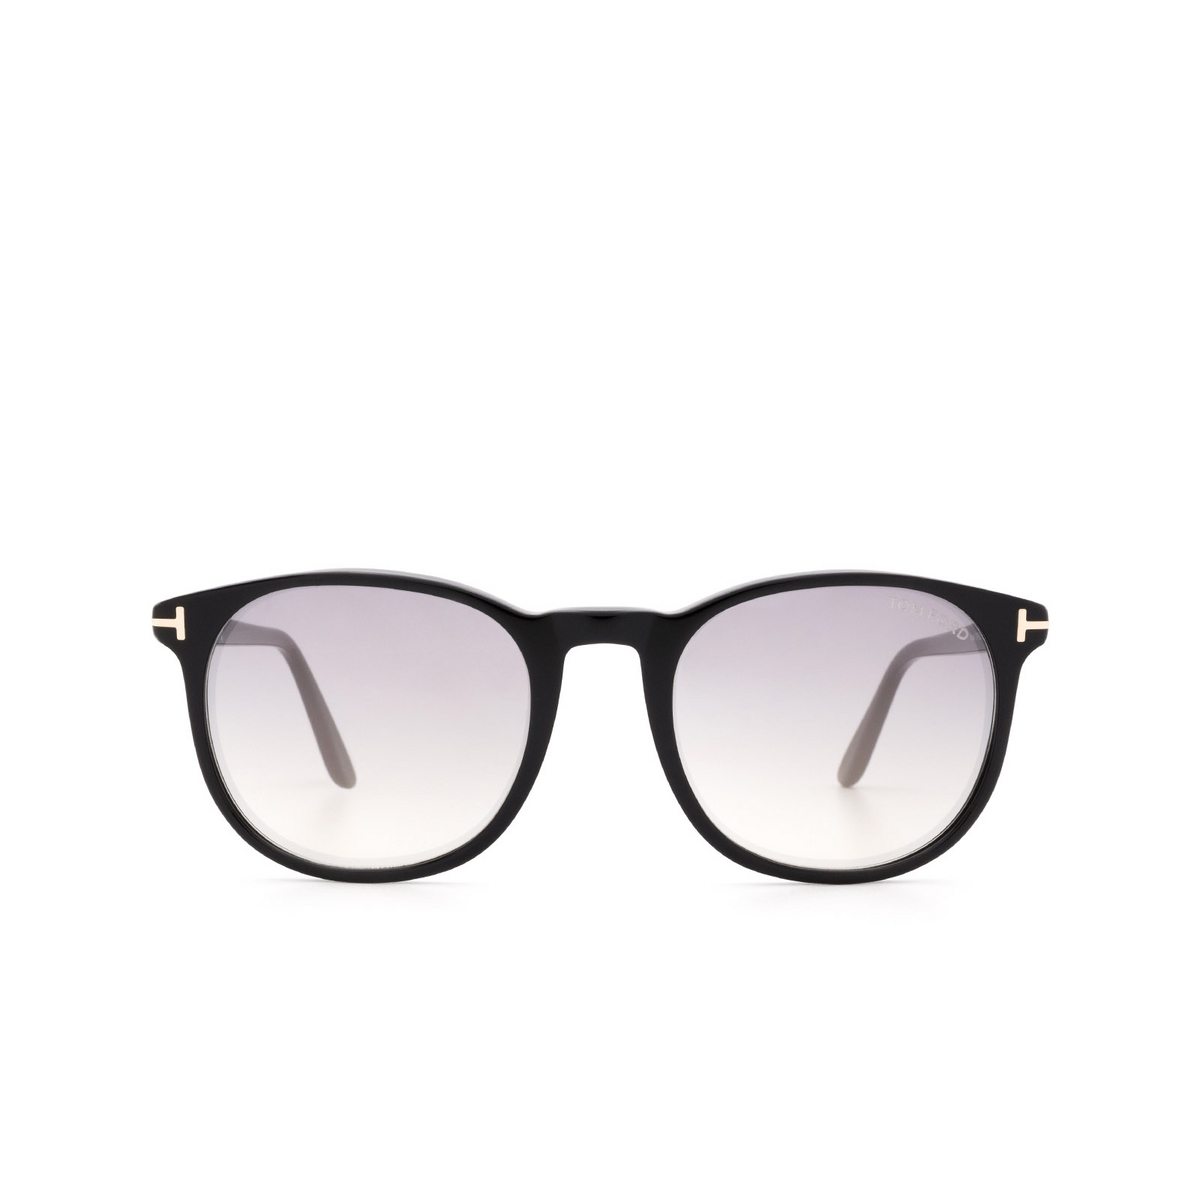 Tom Ford® Square Sunglasses: Ansel FT0858 color Black 01C - front view.